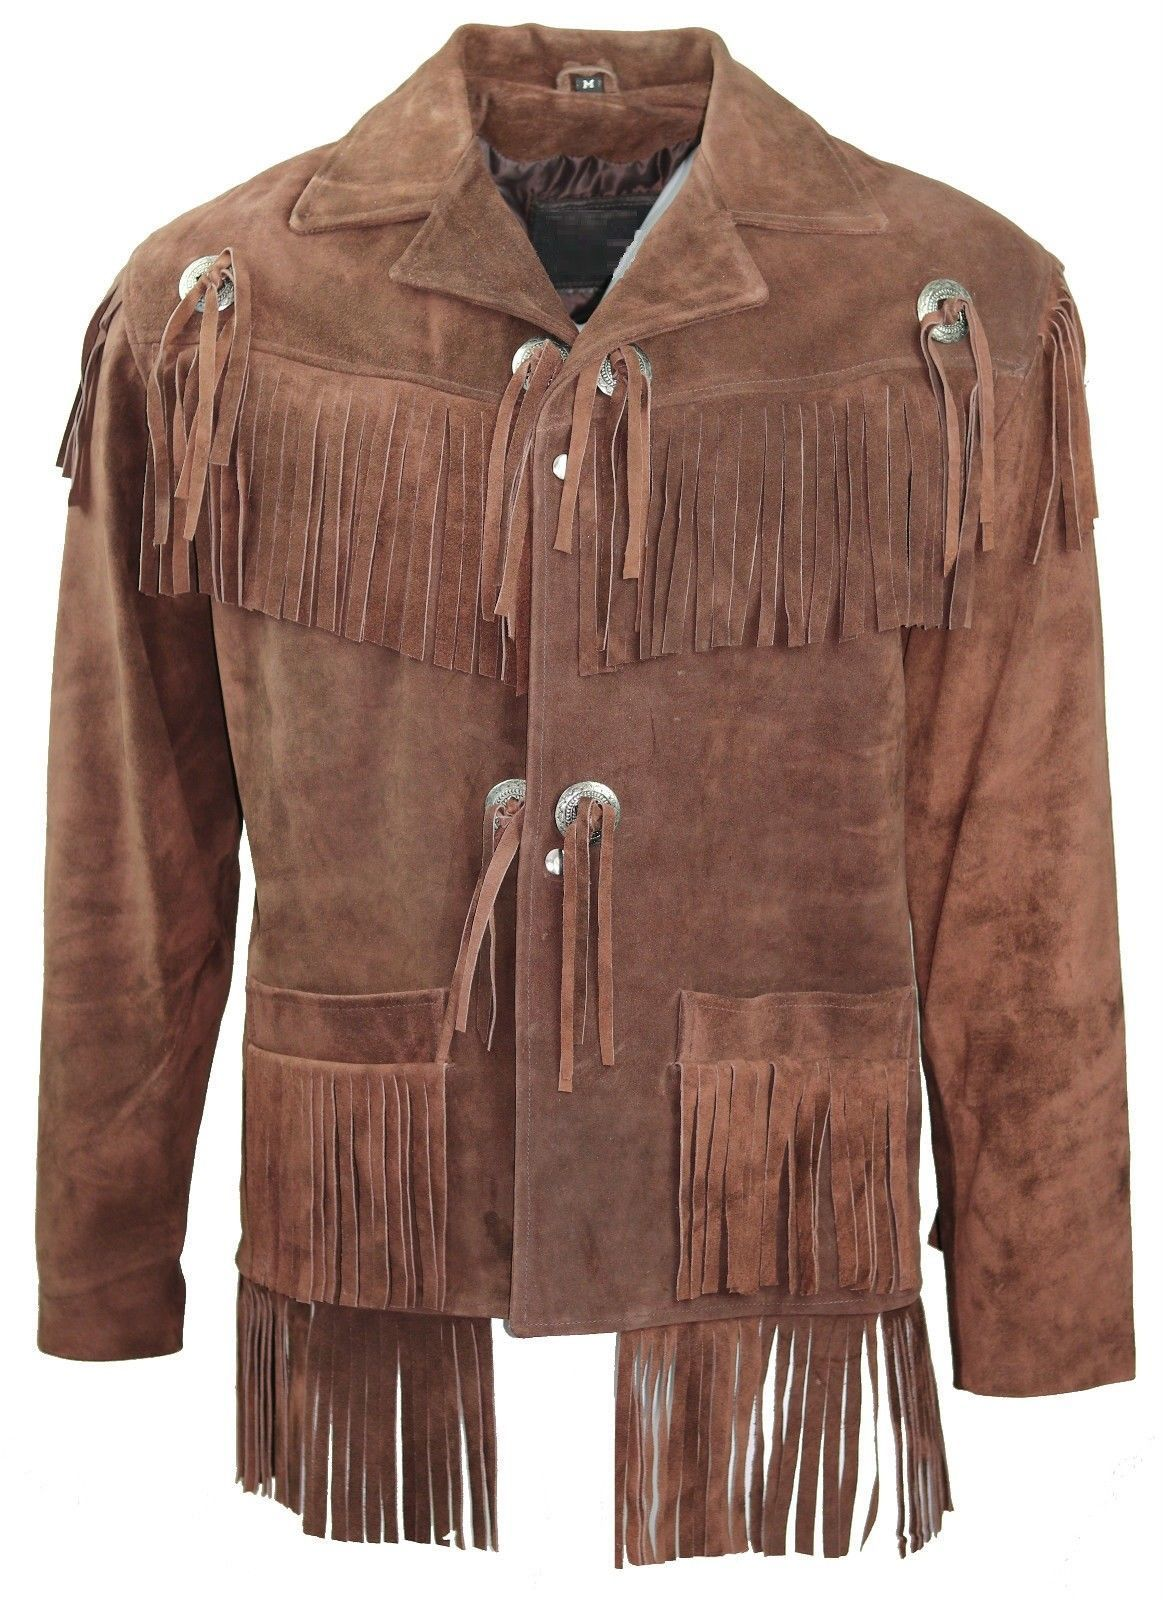 Men's New Brown Western Native American Cow Suede Leather Fringe Jacket FJ41